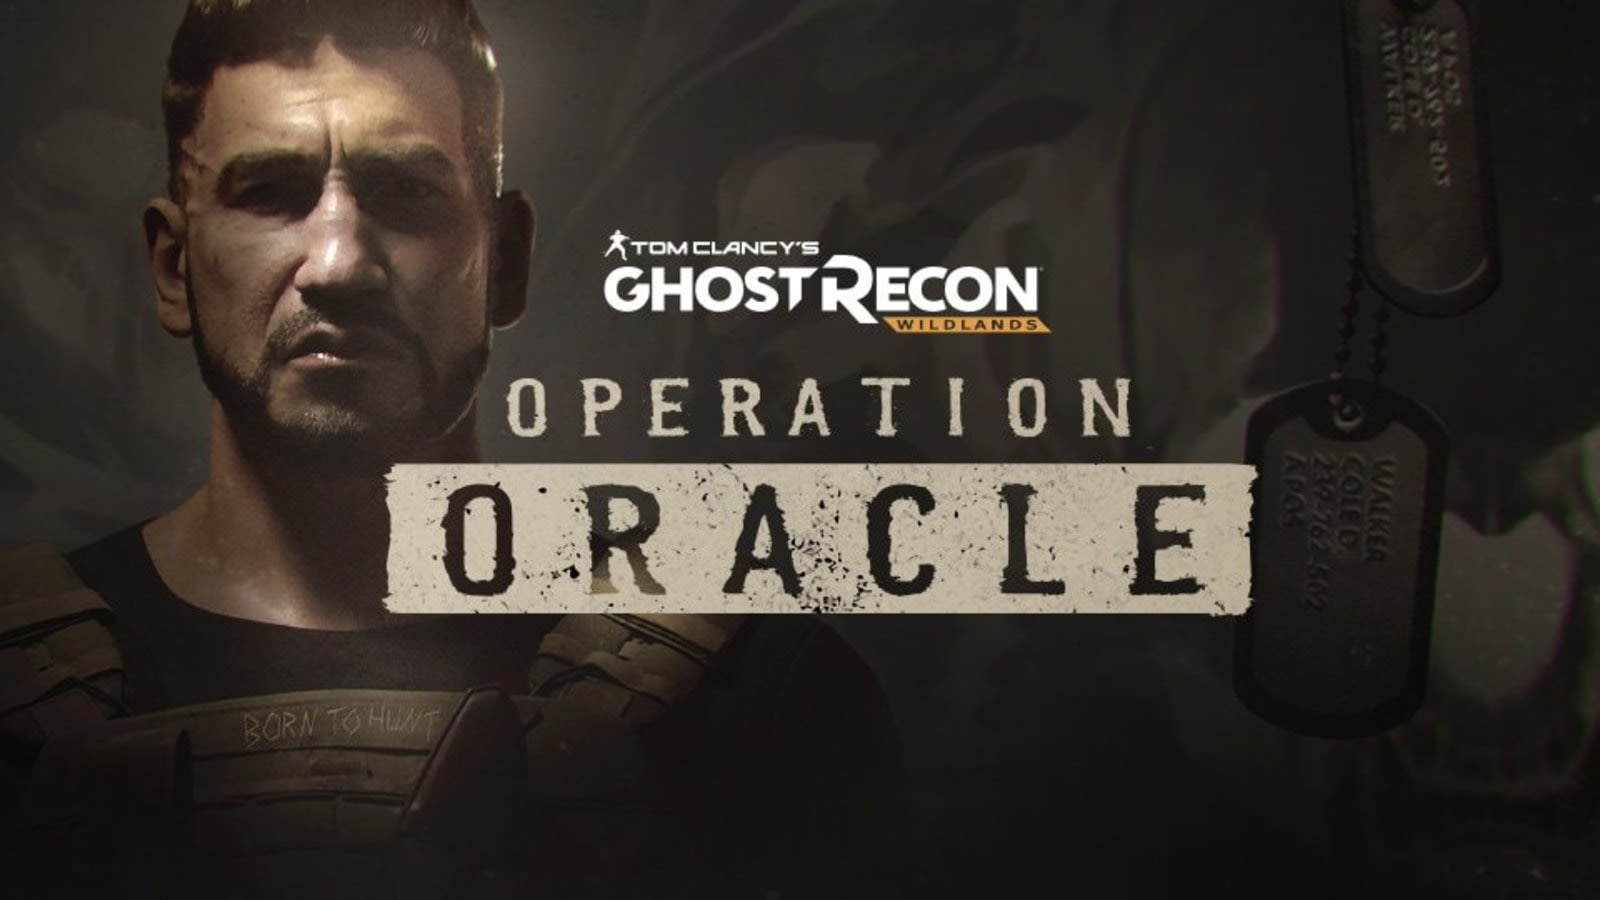 Ghost Recon Wildlands' adds free story missions starring Jon